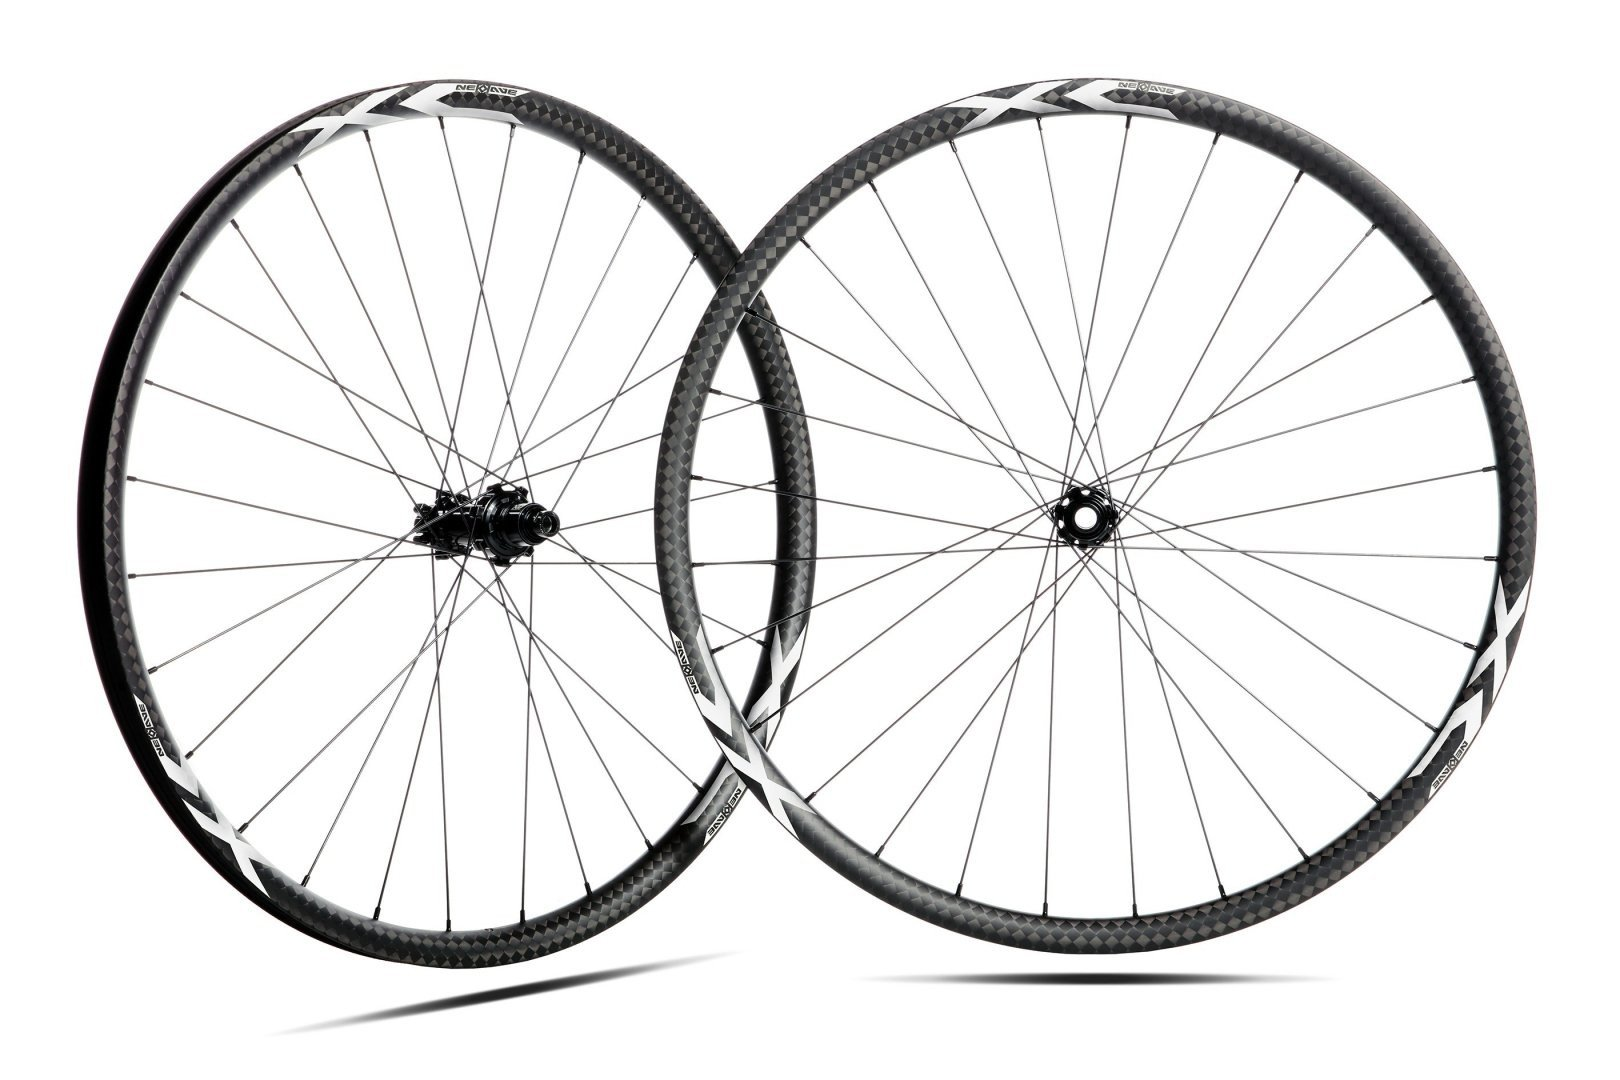 ROUES NEWWAVE XC CARBON CARBON TUBELESS 29'